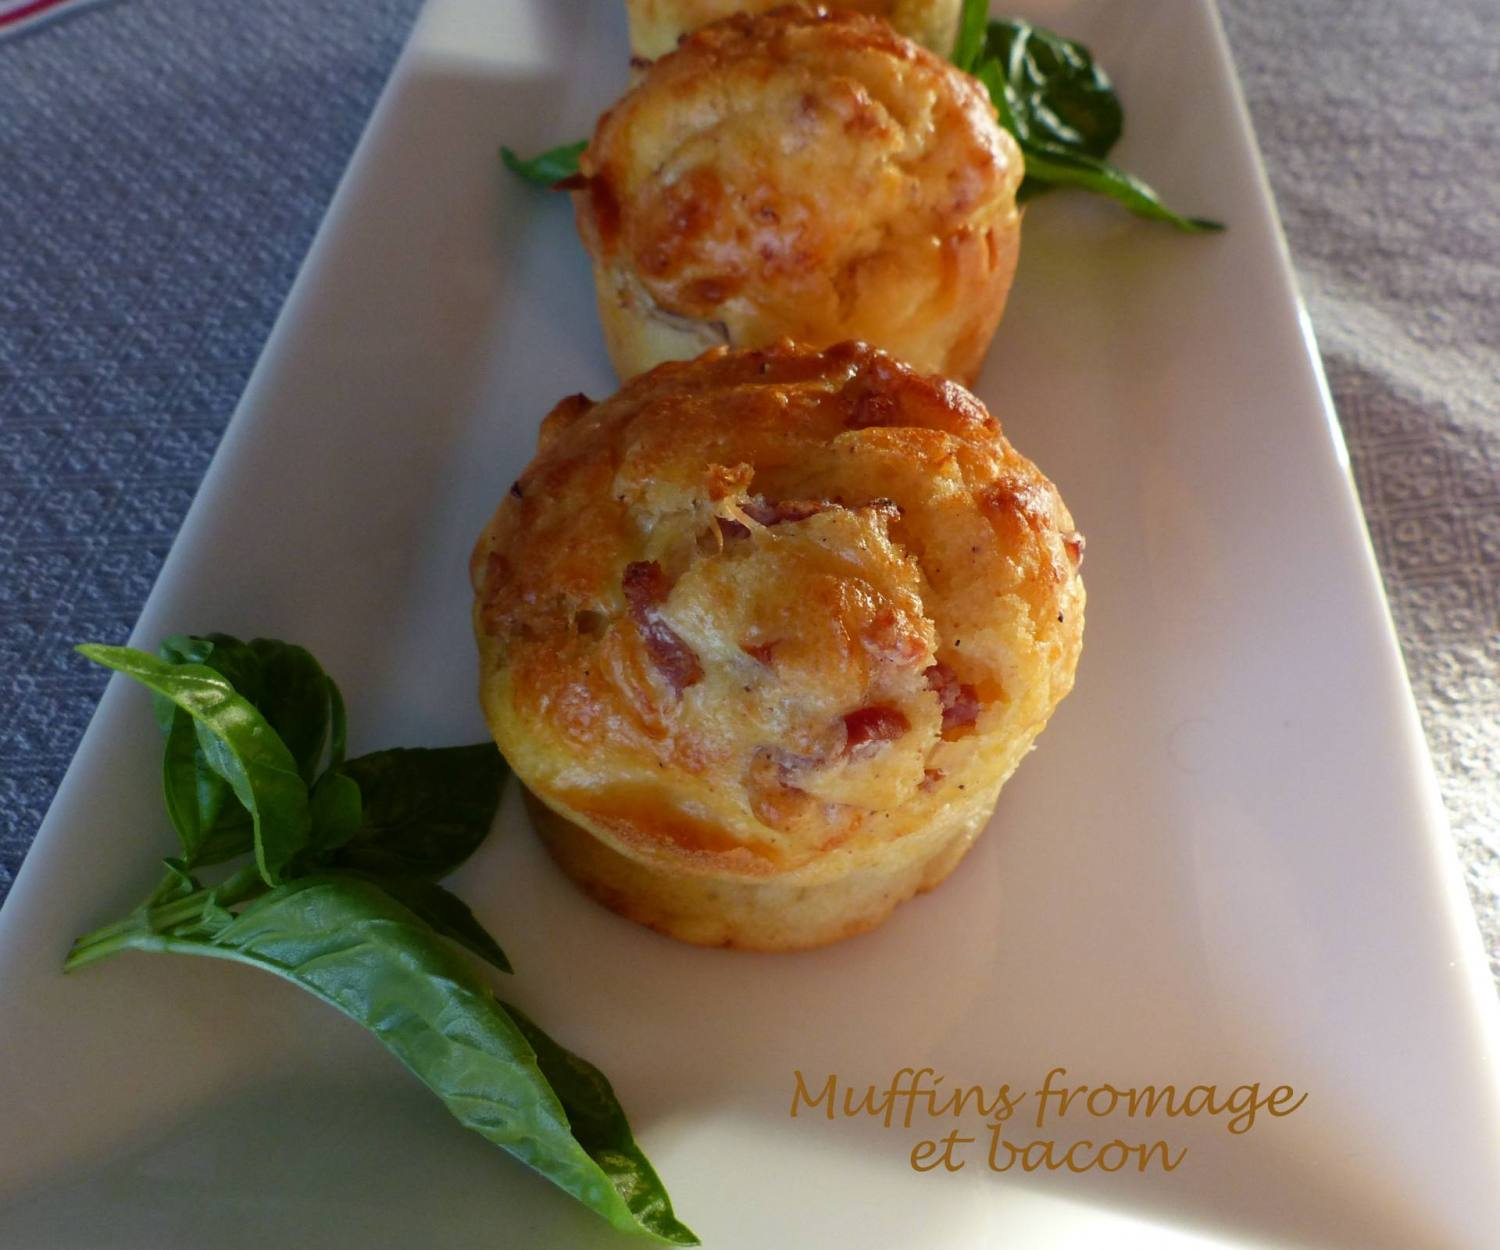 Muffins fromage et bacon P1180642 R